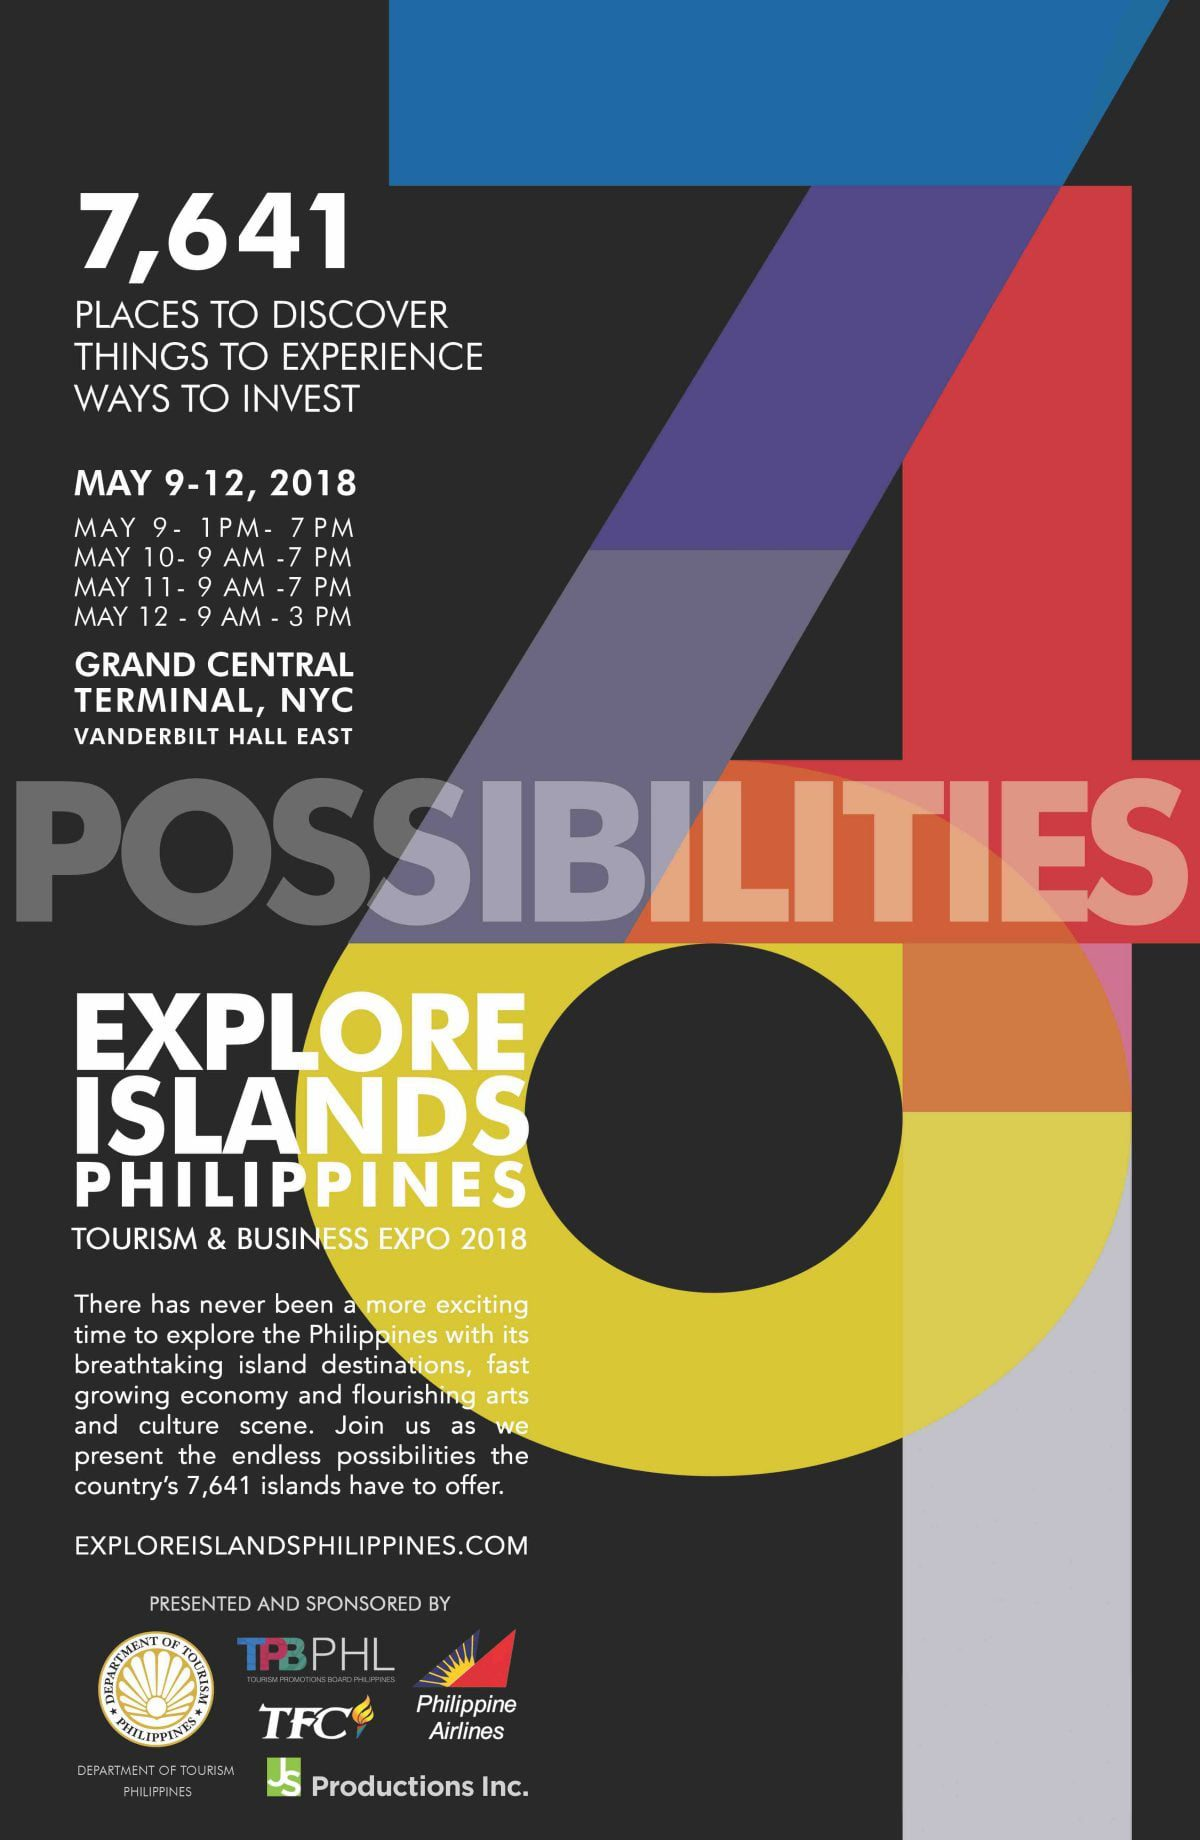 Explore Islands Philippines Business and Tourism Expo